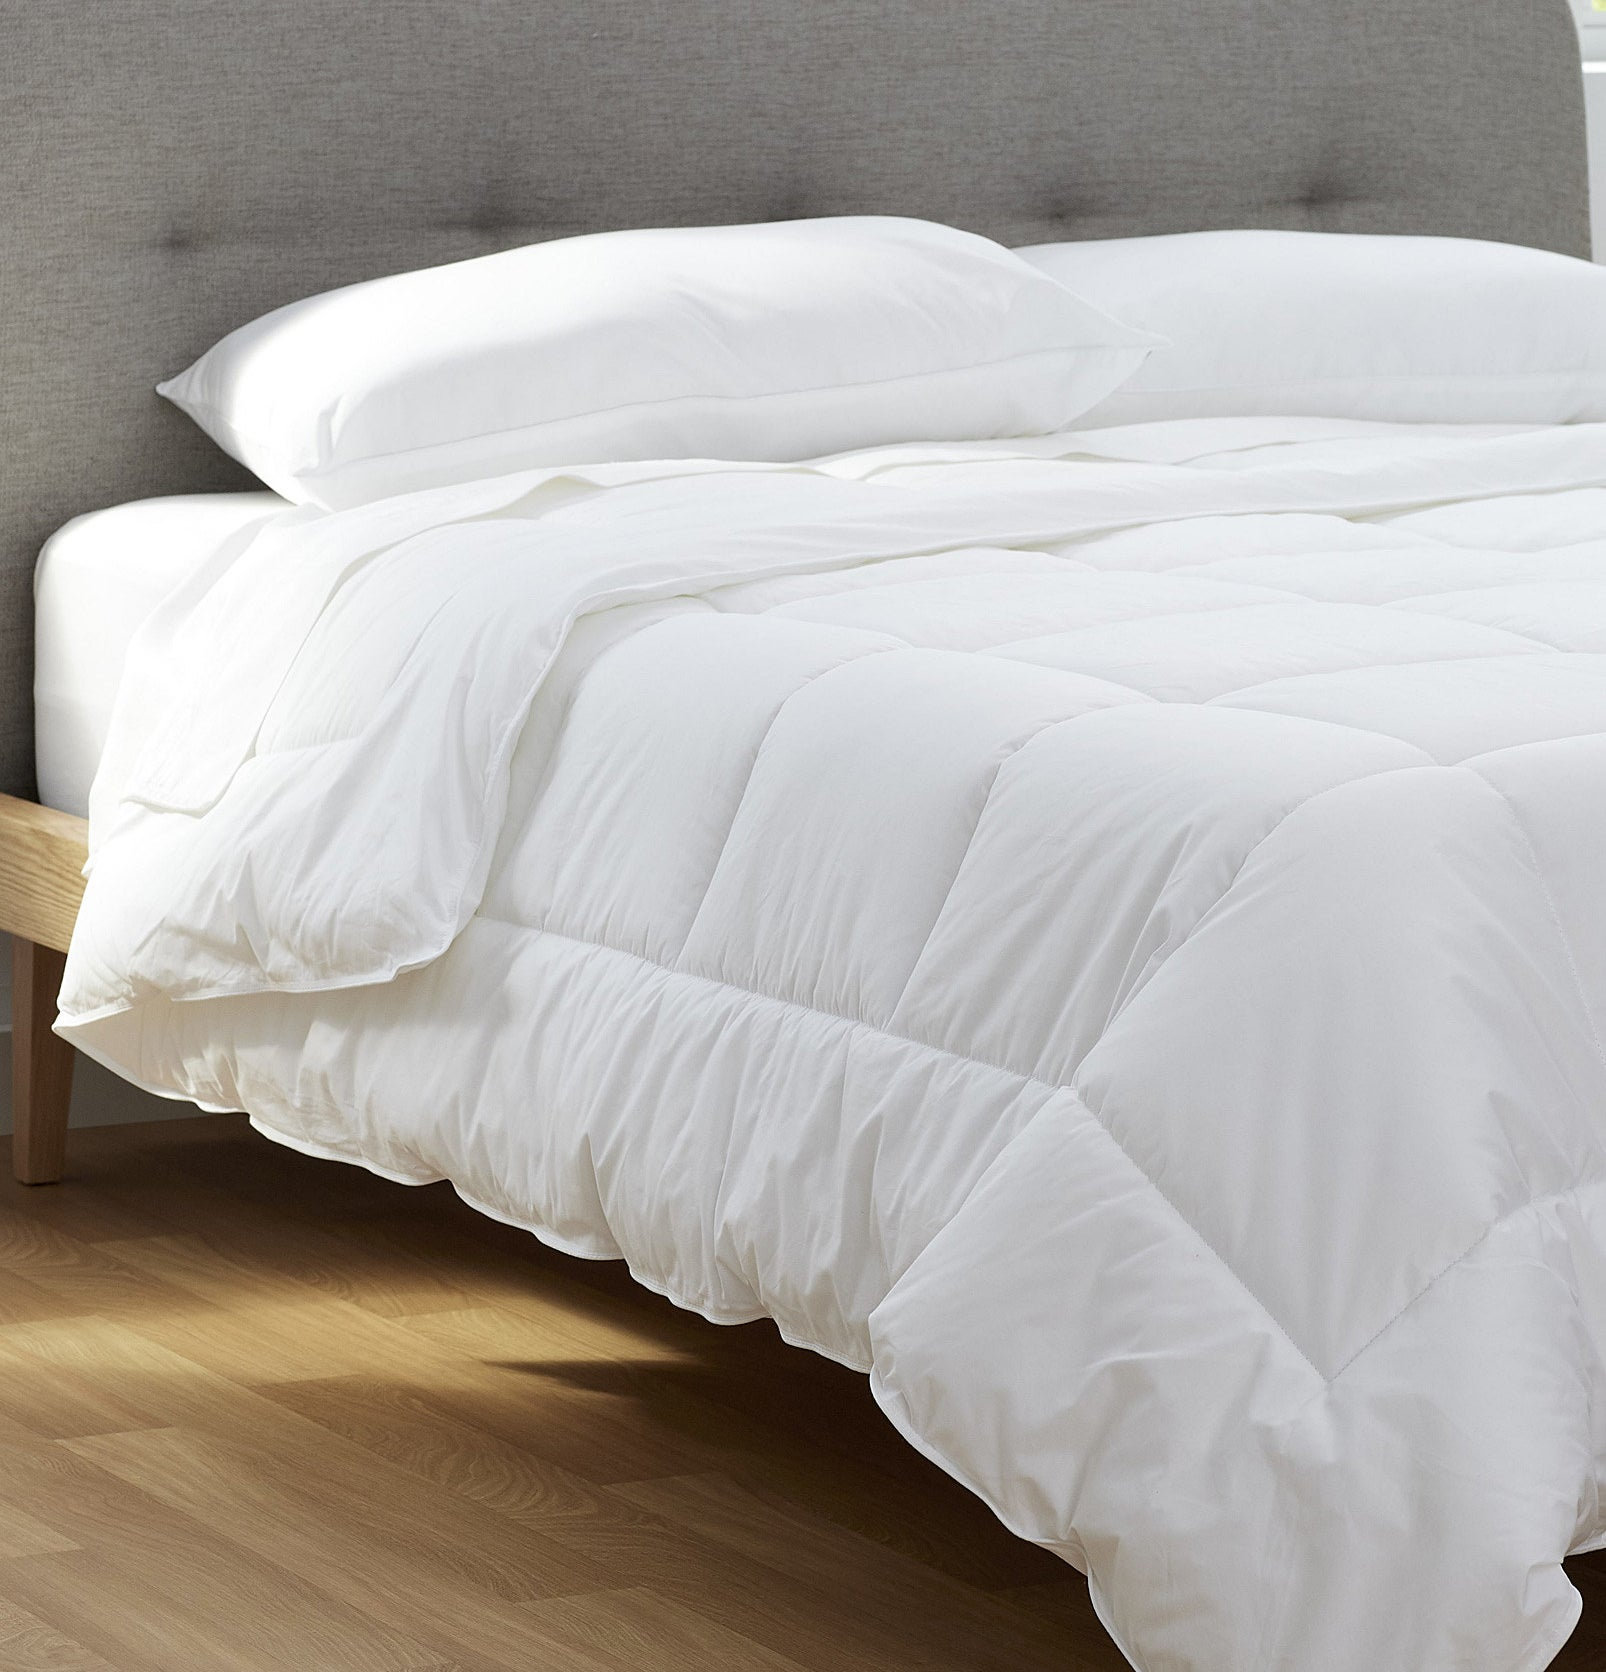 A thick duvet on a bed with two pillows